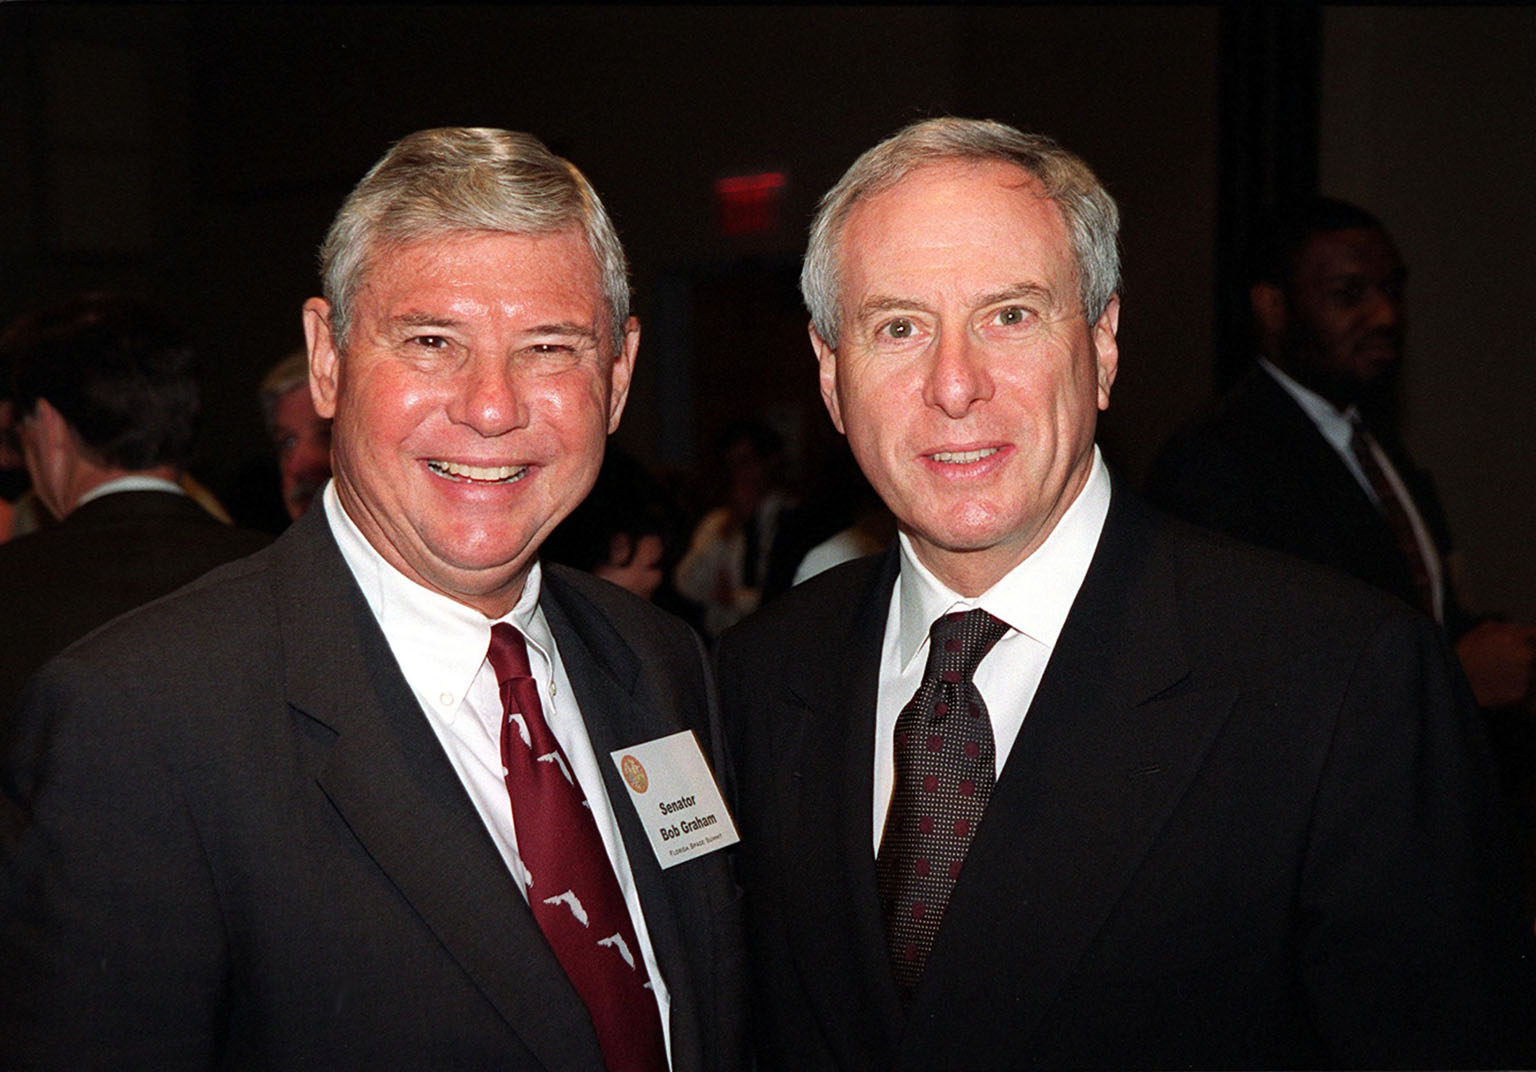 Senator Bob Graham (left) and NASA Administrator Dan Goldin (right) are two of the participants in the First Florida Space Summit, held at the Kennedy Space Center Visitor Complex. The event, featuring a discussion on the future of space as it relates to the State of Florida and moderated by Center Director Roy Bridges, included other participants such as Senator Connie Mack, Rep. Dave Weldon, 45th Space Wing Commander Brig. Gen. Donald Pettit and heads of aerospace companies